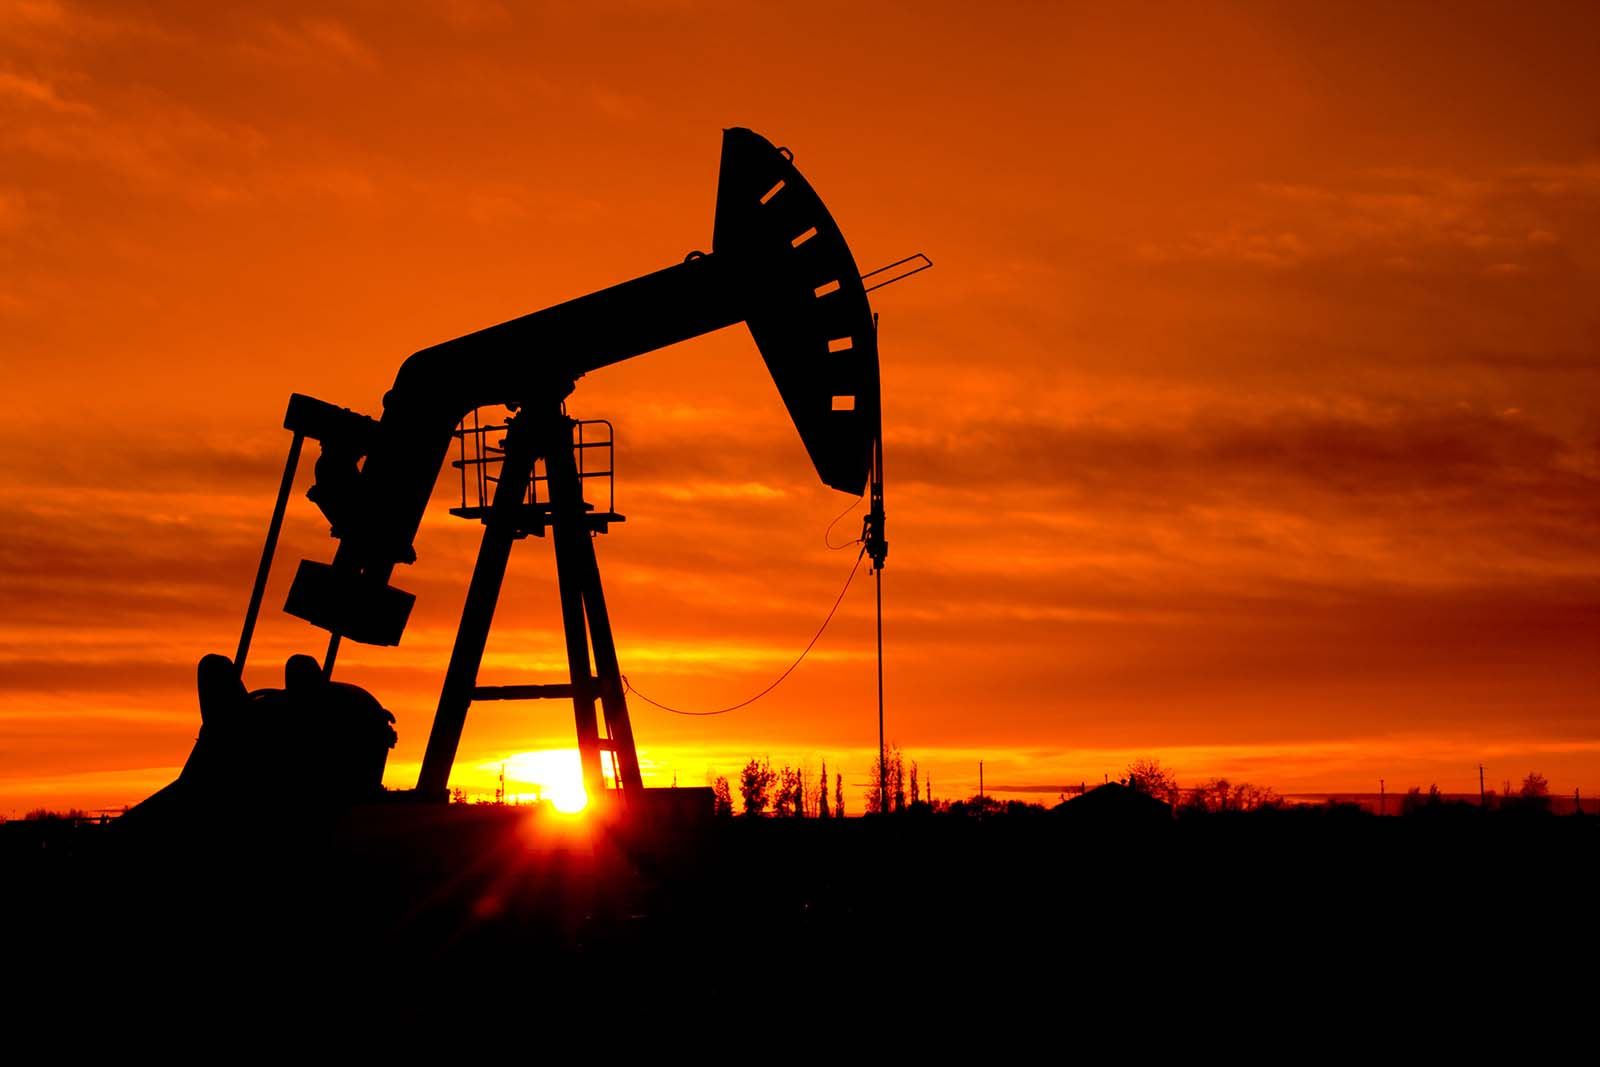 the oil and gas market in 5 oil and gas pricing • there are numerous factors that determine the price of oil and gas 13 financial markets • it has been noticed that the oil markets are increasingly interconnected with other financial markets such as the exchange rate market, stock market and futures market.